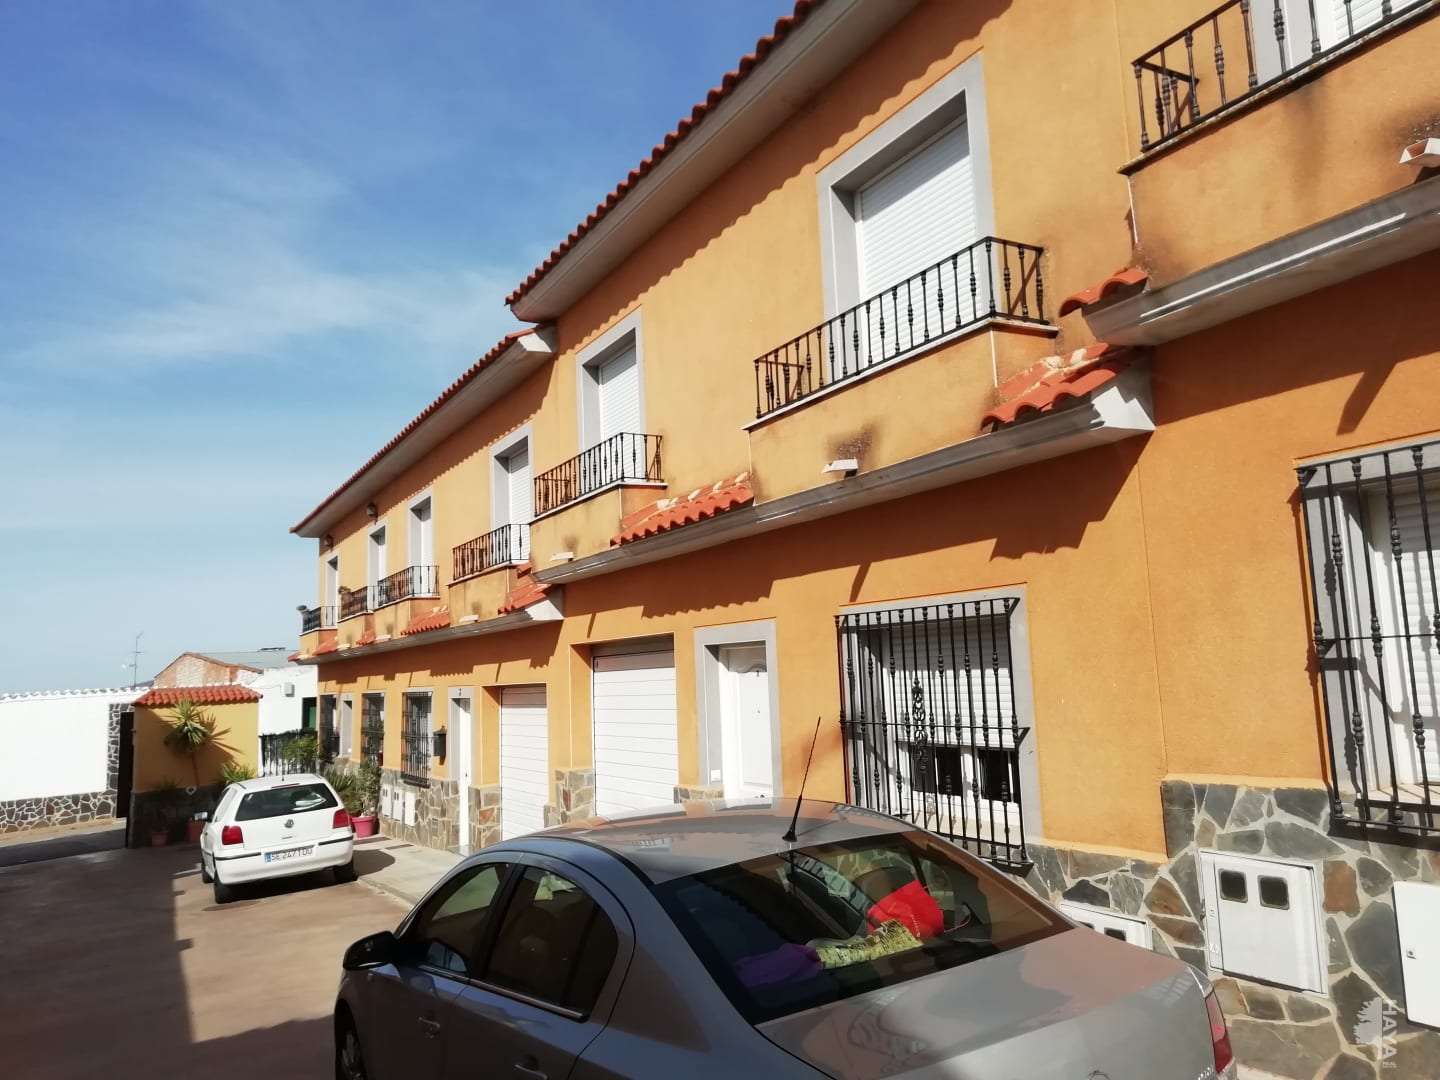 townhouses venta in puebla de sancho perez cuartel guardia civil